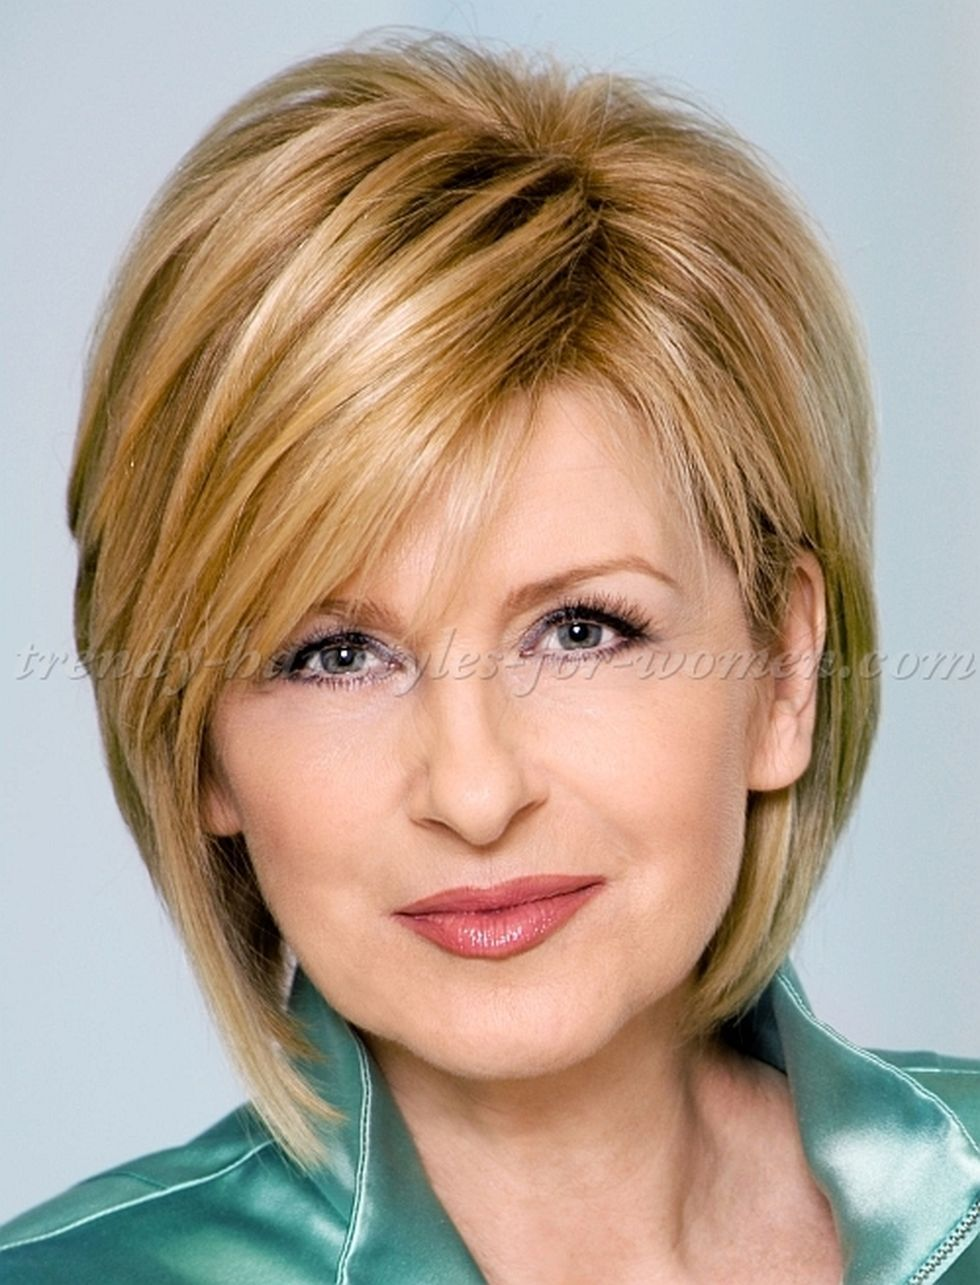 Fabulous over 50 short hairstyle ideas 21